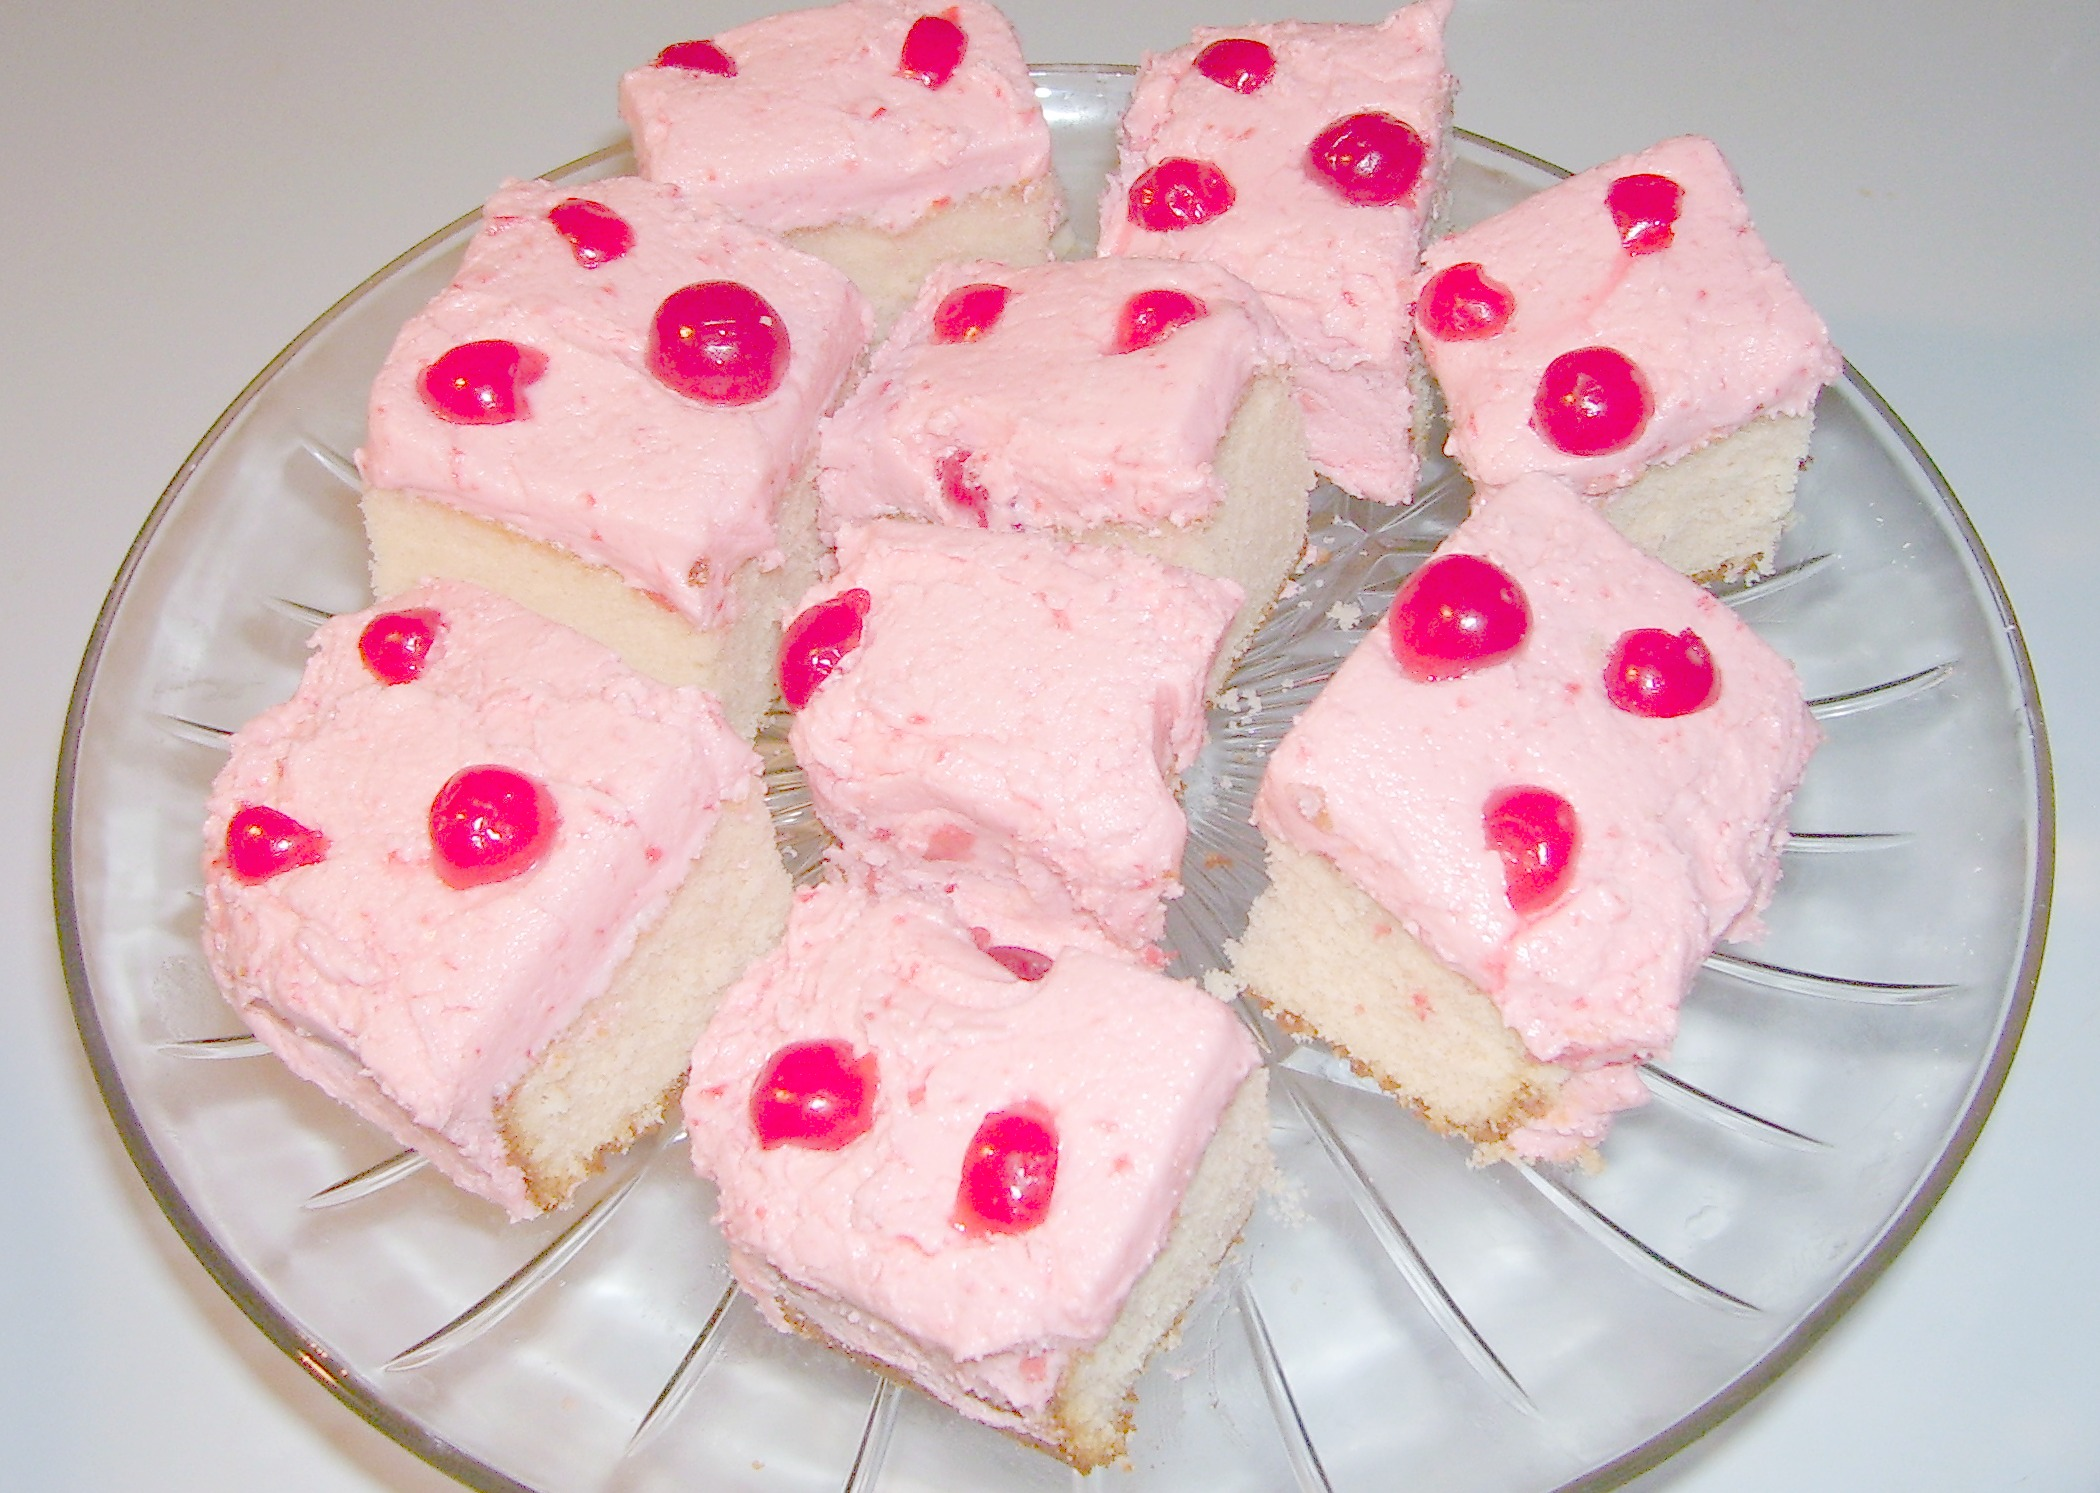 Maraschino Cherry Cake Recipe Squares with yummy Cherry Cream Cheese Frosting.